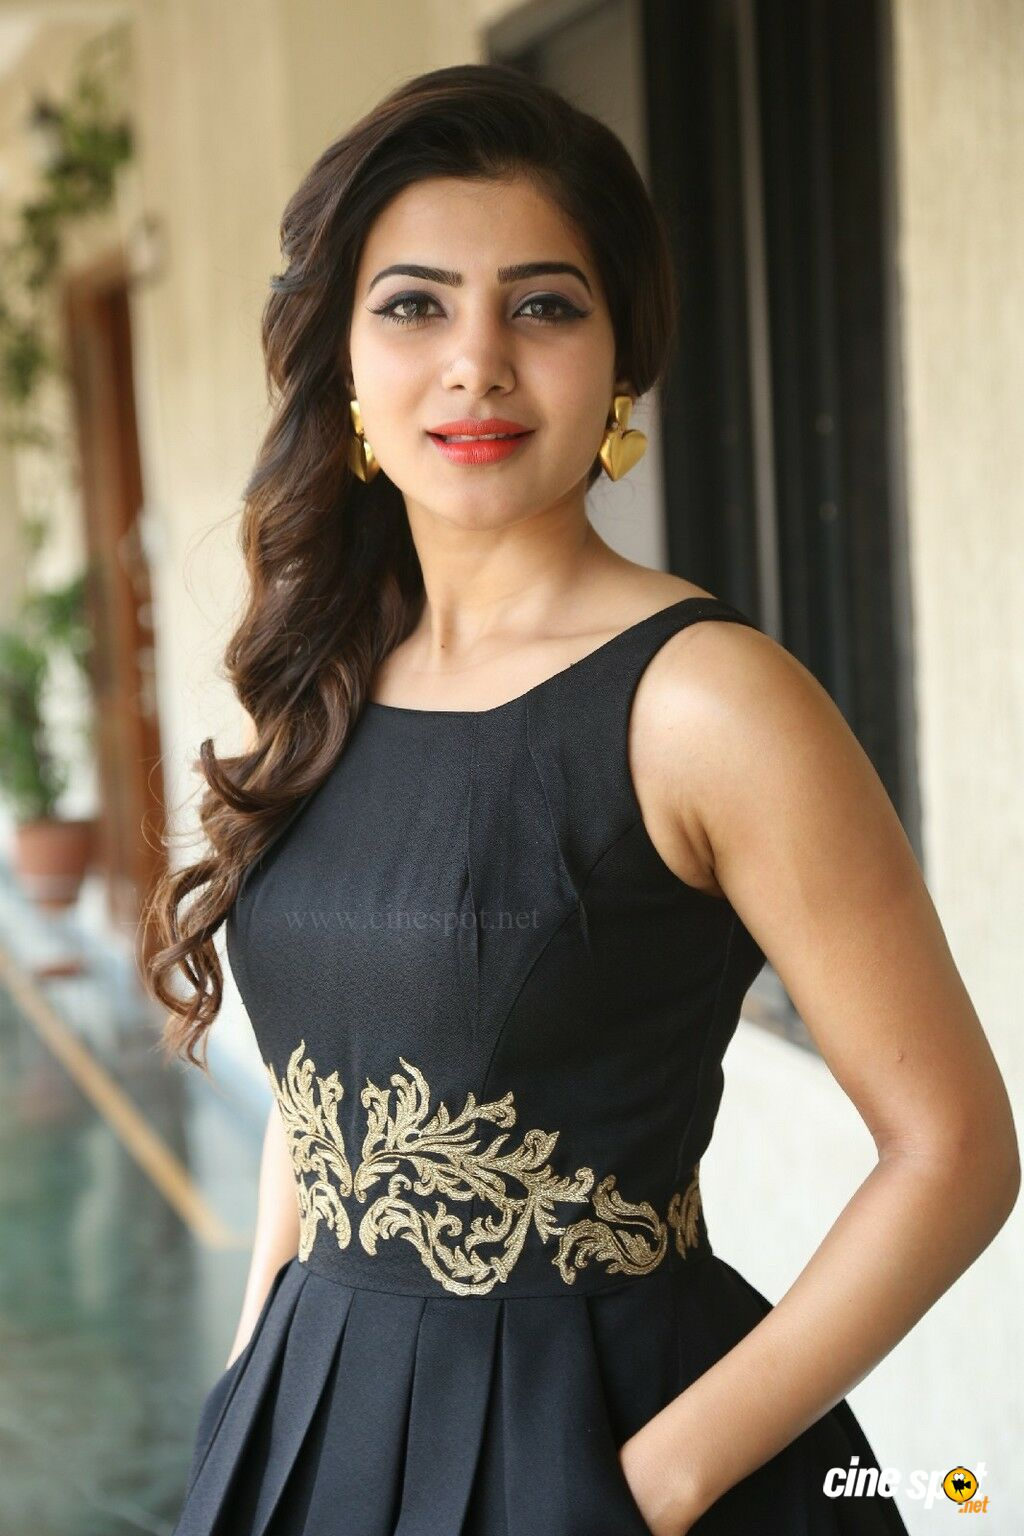 Http Www Cinespot Net Gallery V South Cinema Actress Samantha Photos Samantha South Actress Photos Stills Samantha Latest Photos 29 Jpg Html